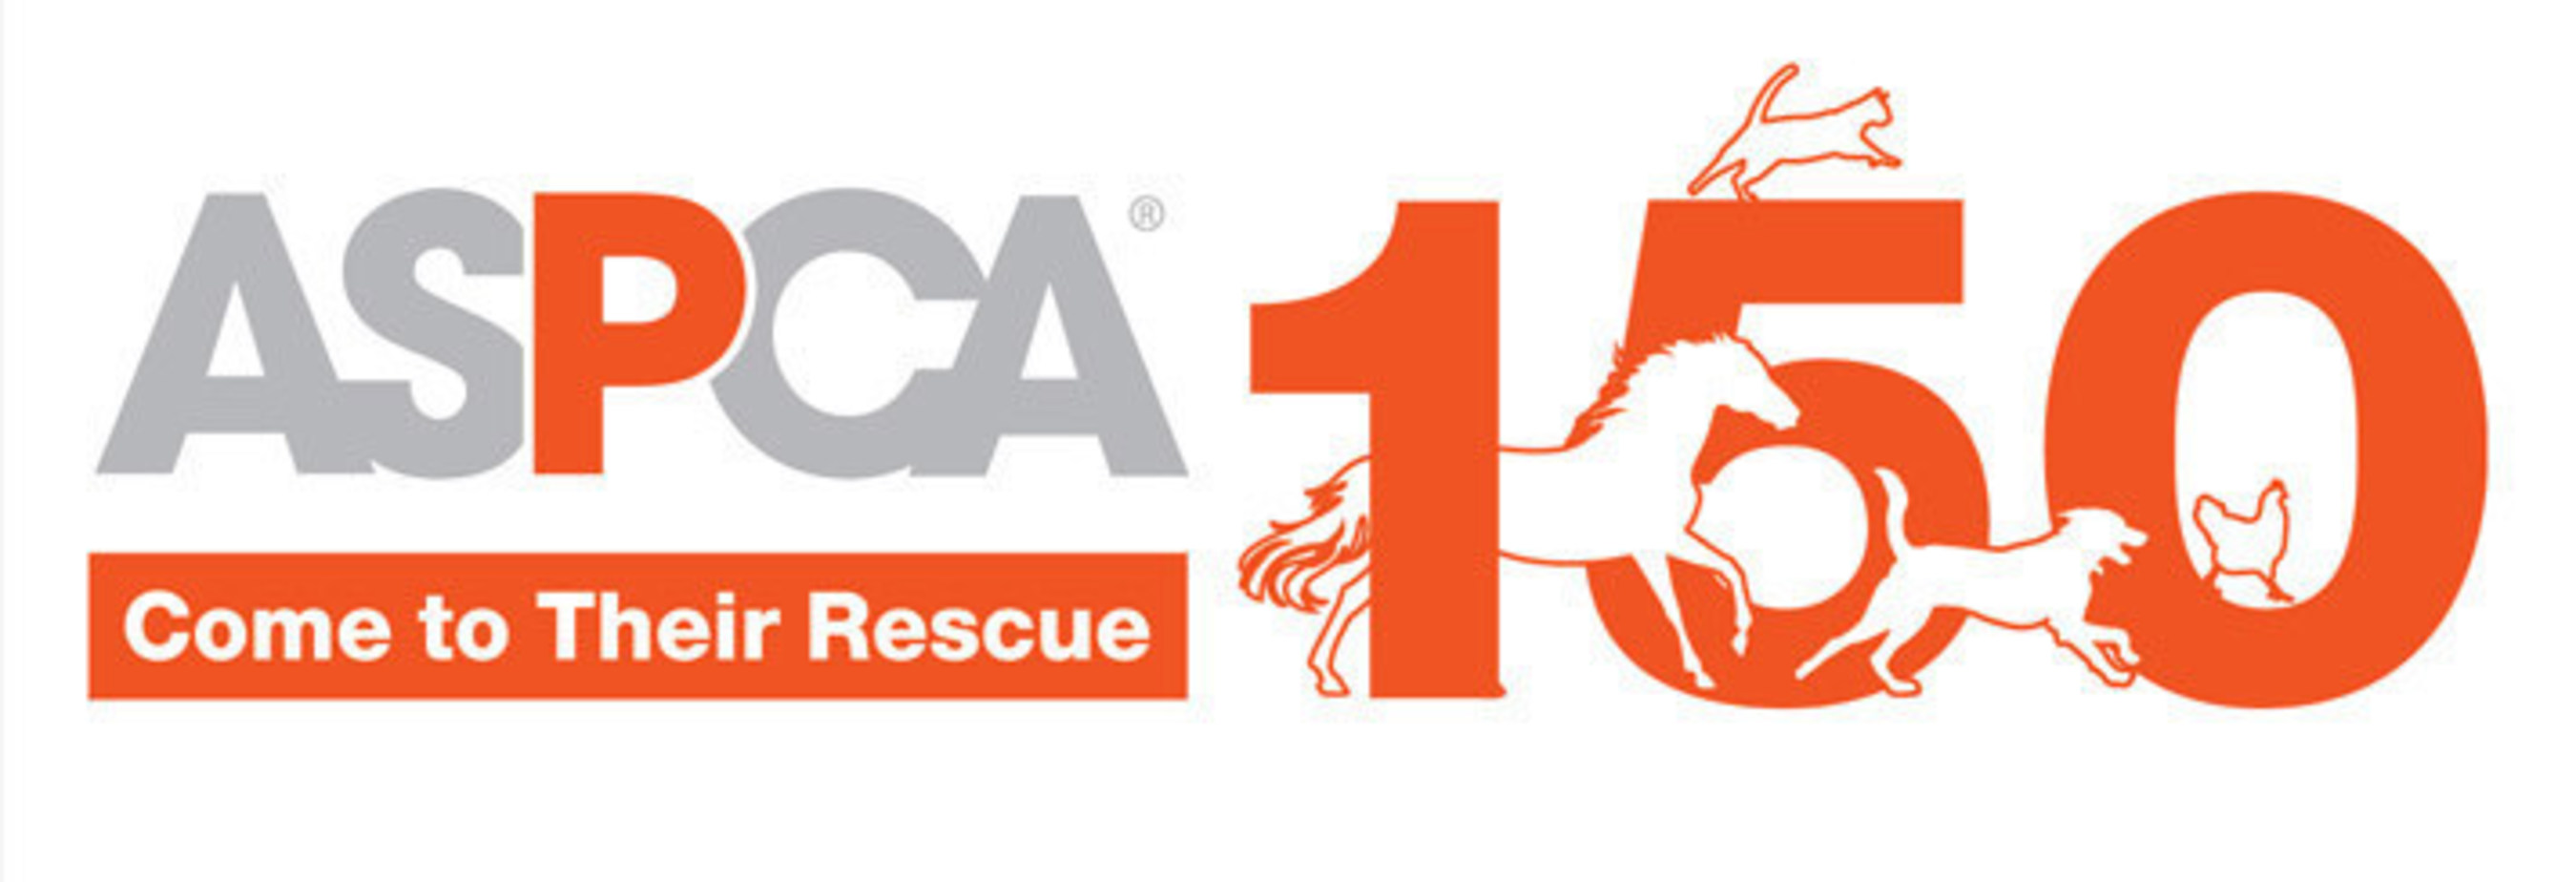 Aspca logo clipart transparent download ASPCA Celebrates 150 Years as Nation\'s Leading Voice for Animals transparent download